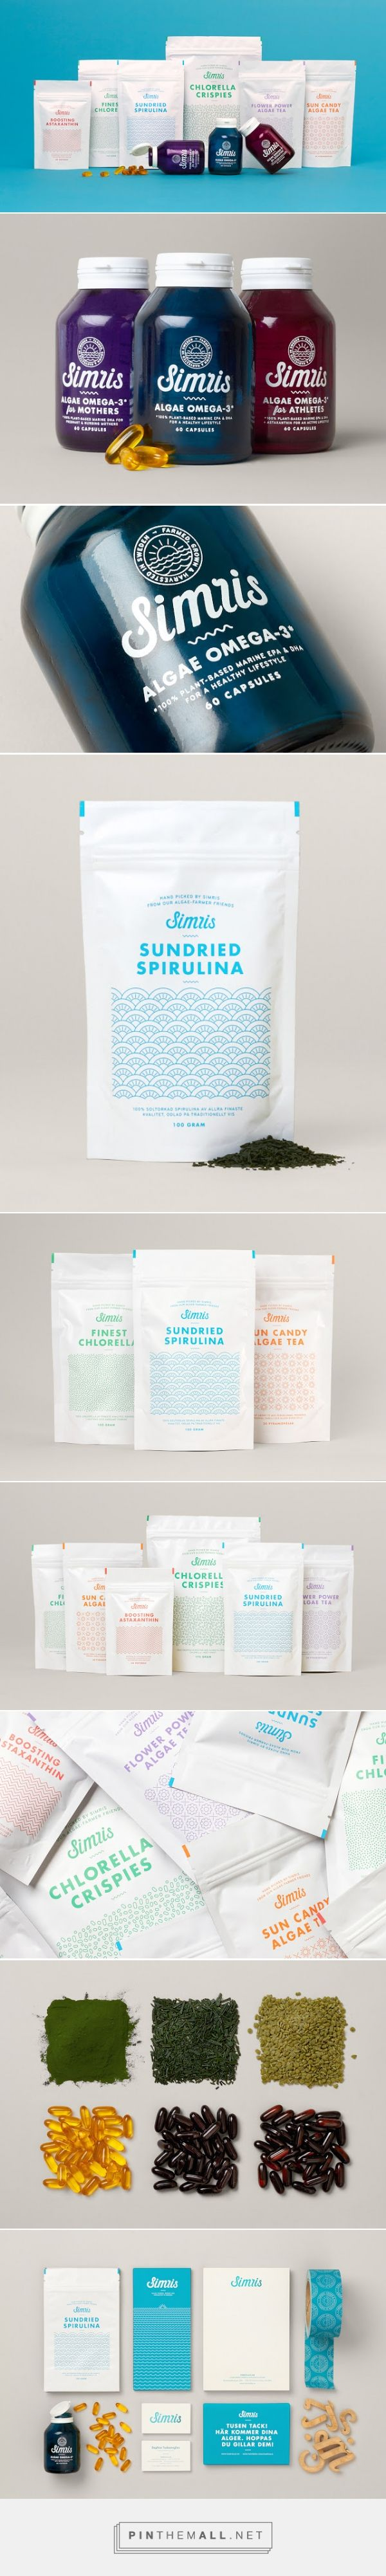 Simris //  packaging for the award-winning agribusiness from Sweden's California